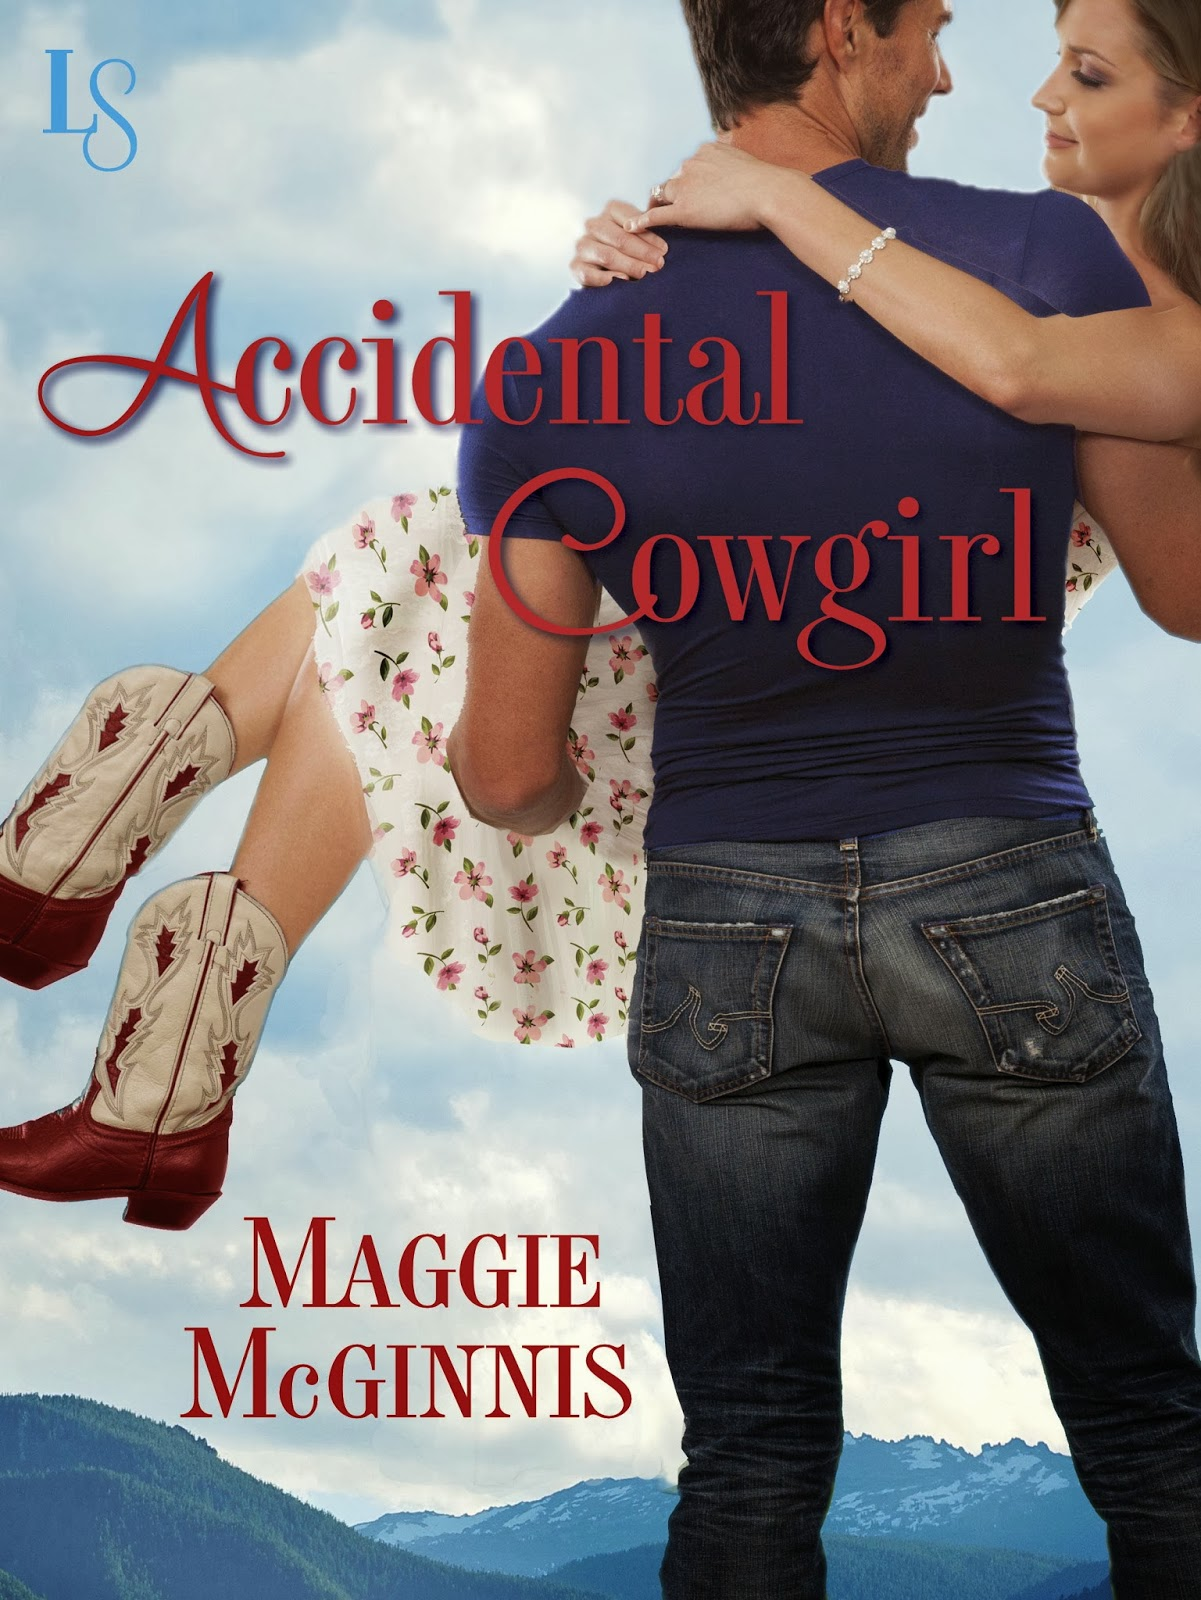 http://www.whatsbeyondforks.com/2013/10/accidental-cowgirl-by-maggie-mcginnis.html